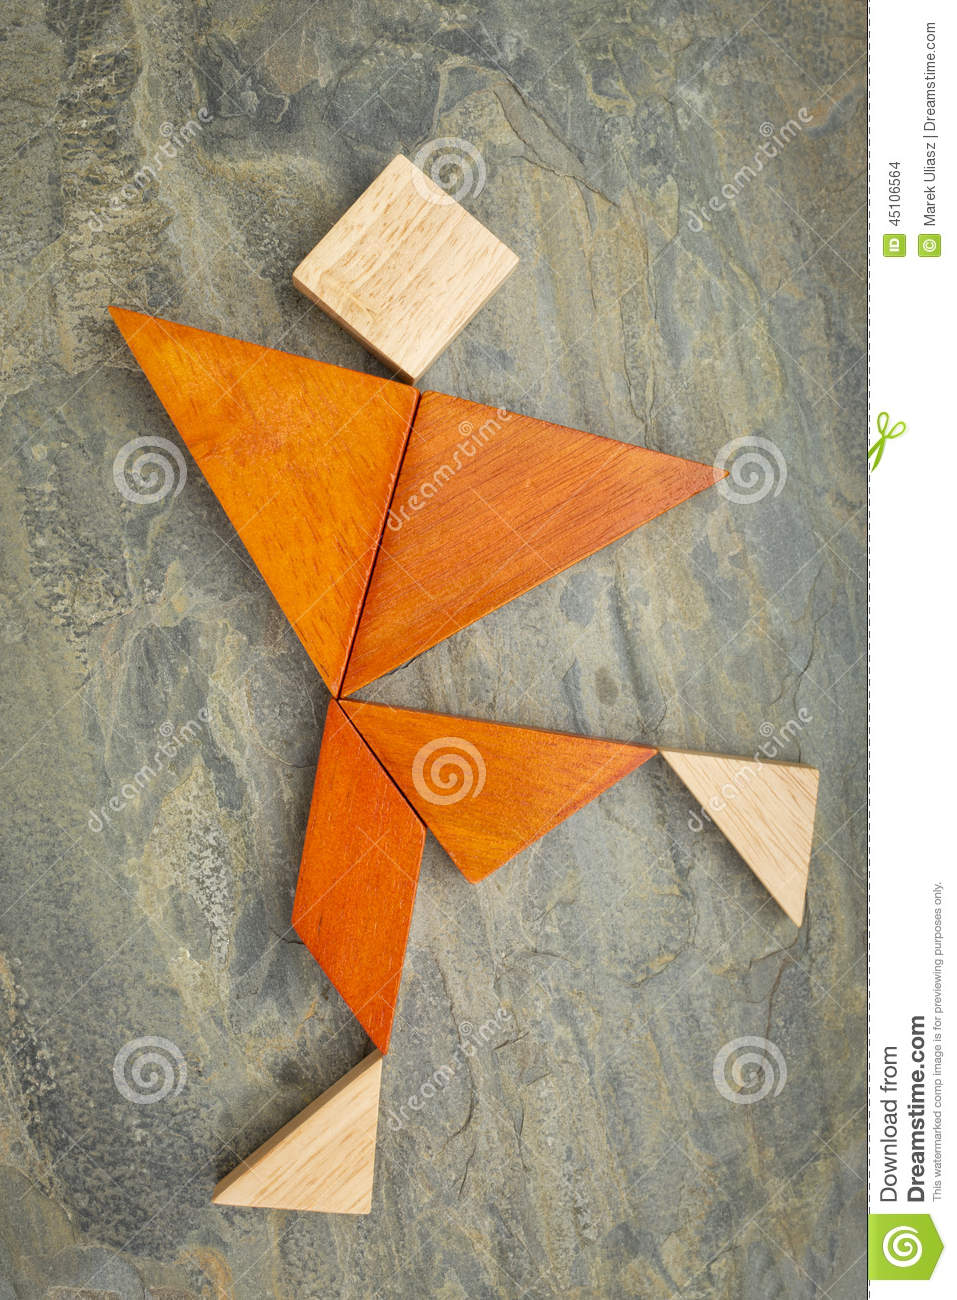 how to make a tangram with 7 pieces